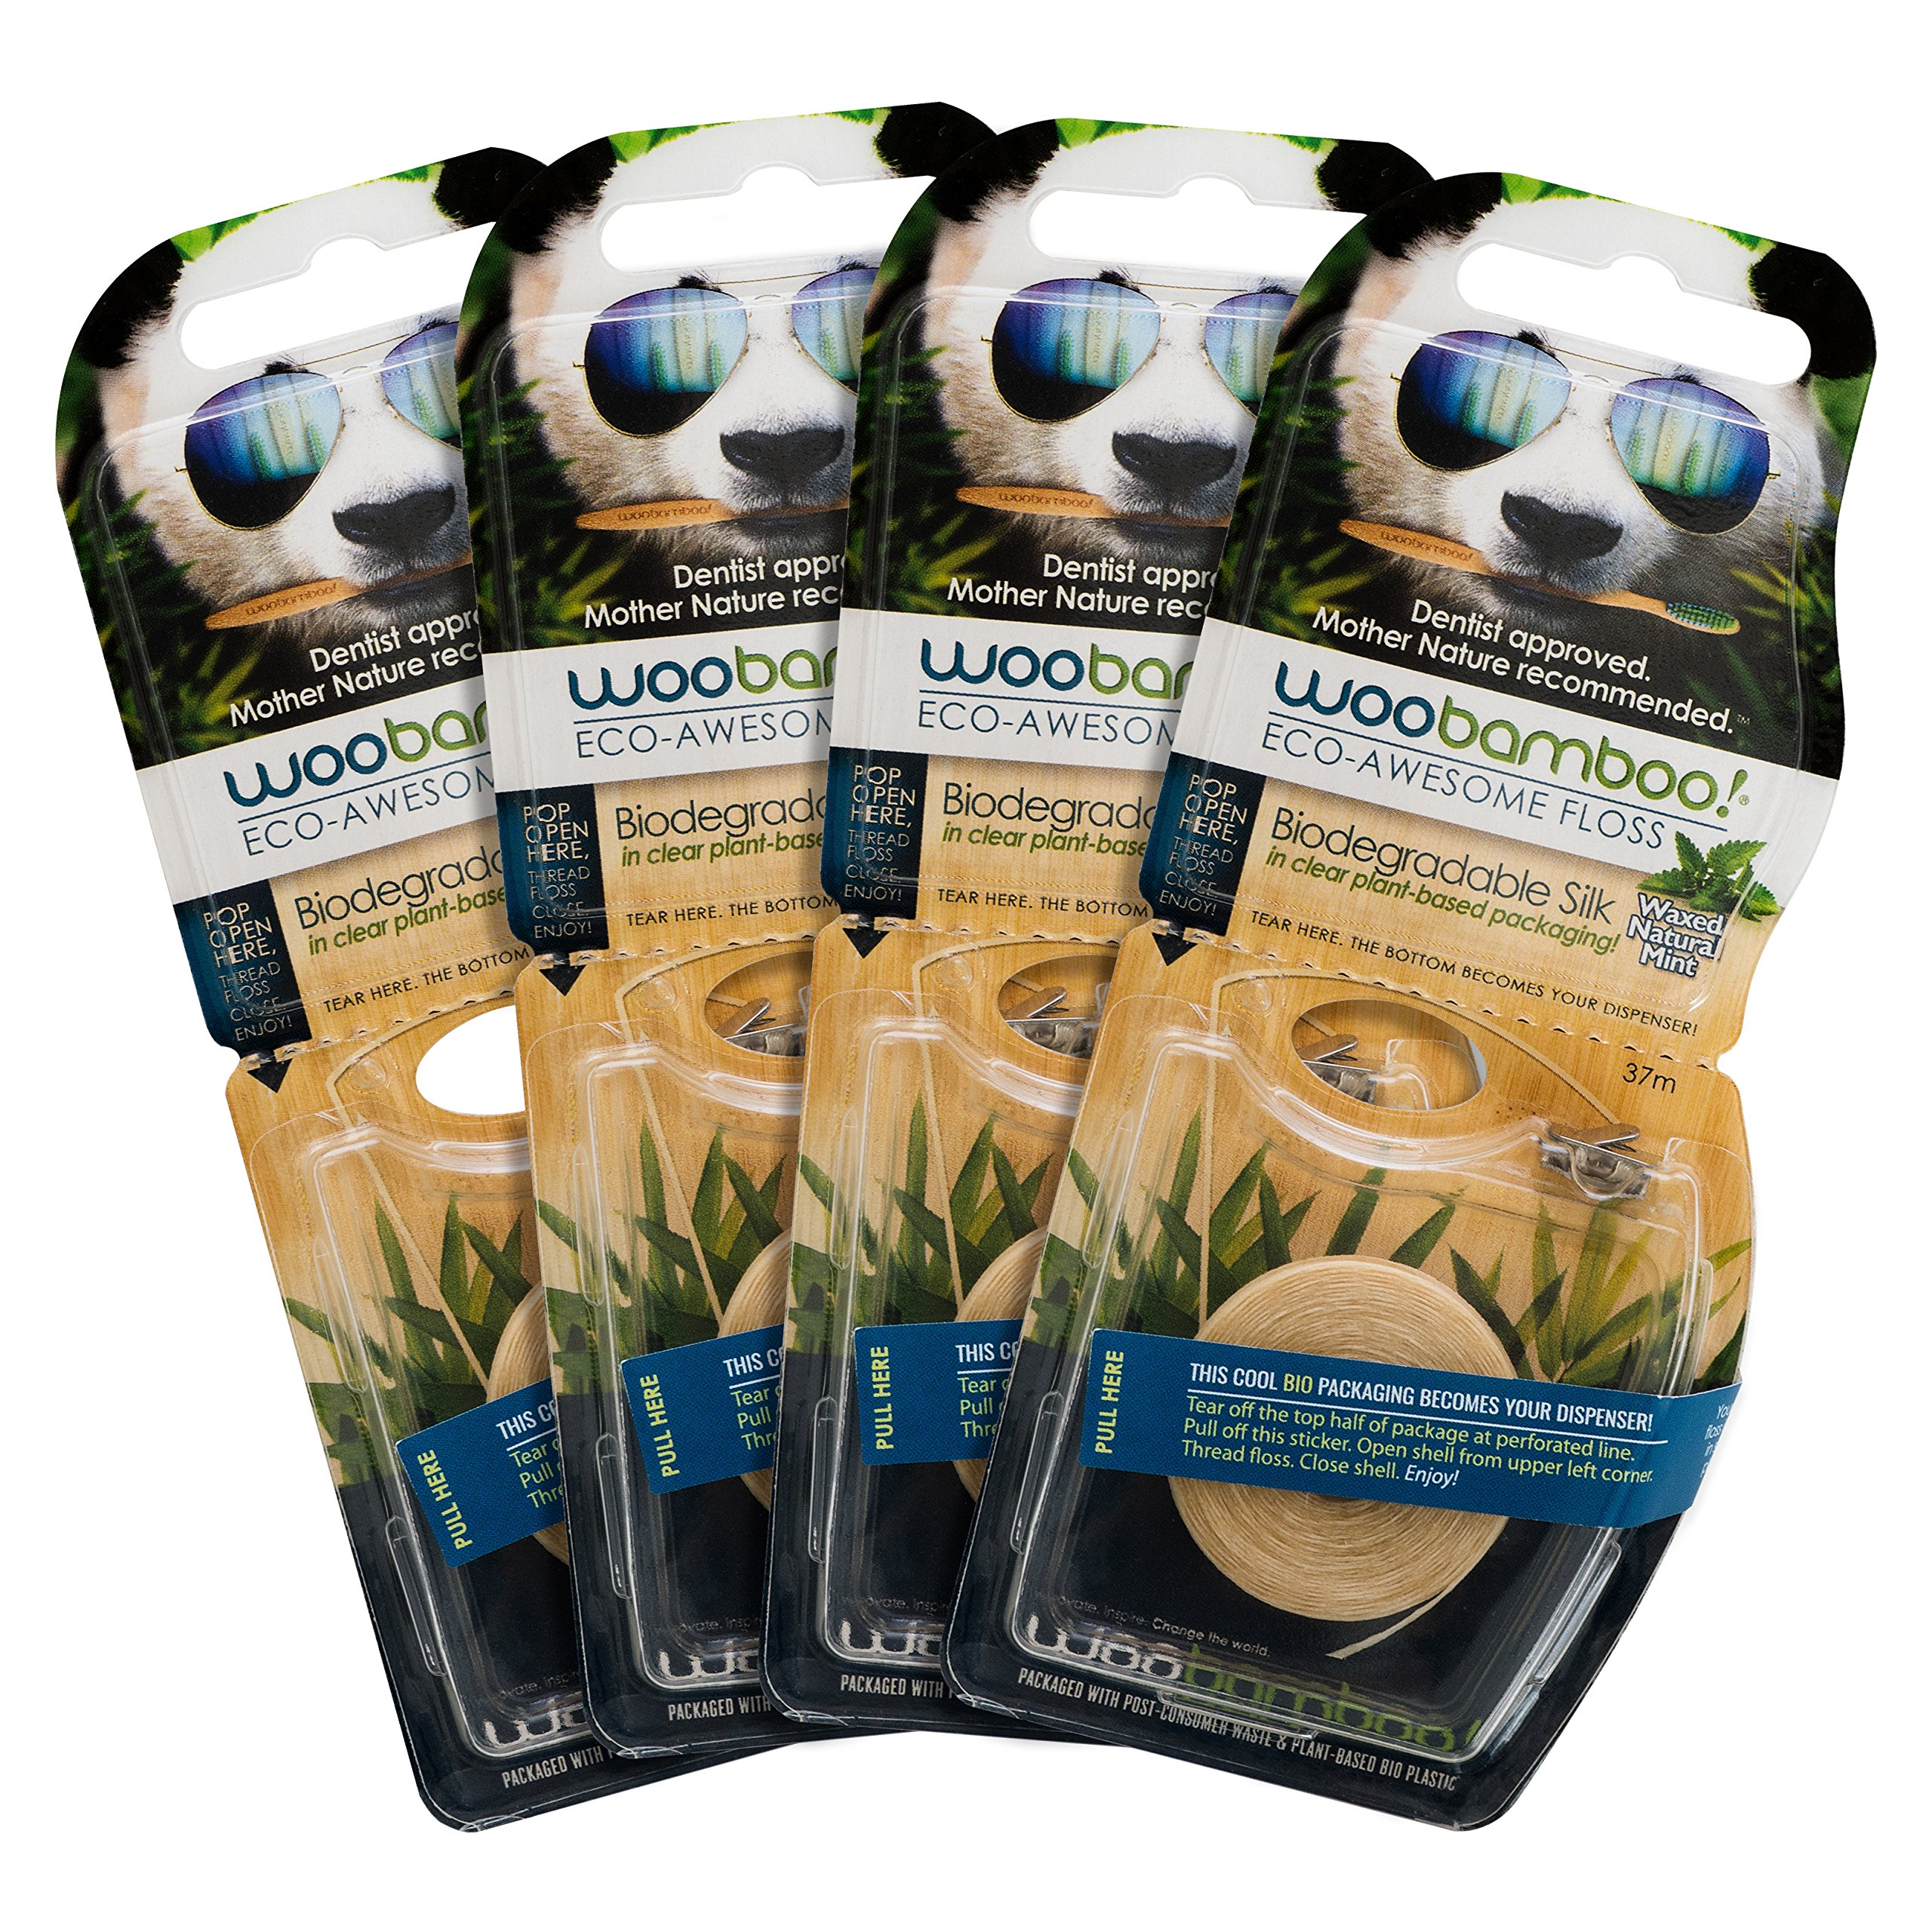 Woobamboo Eco-Awesome Floss, Biodegradable Silk Floss in Plant-Based Packaging, 4 Pack